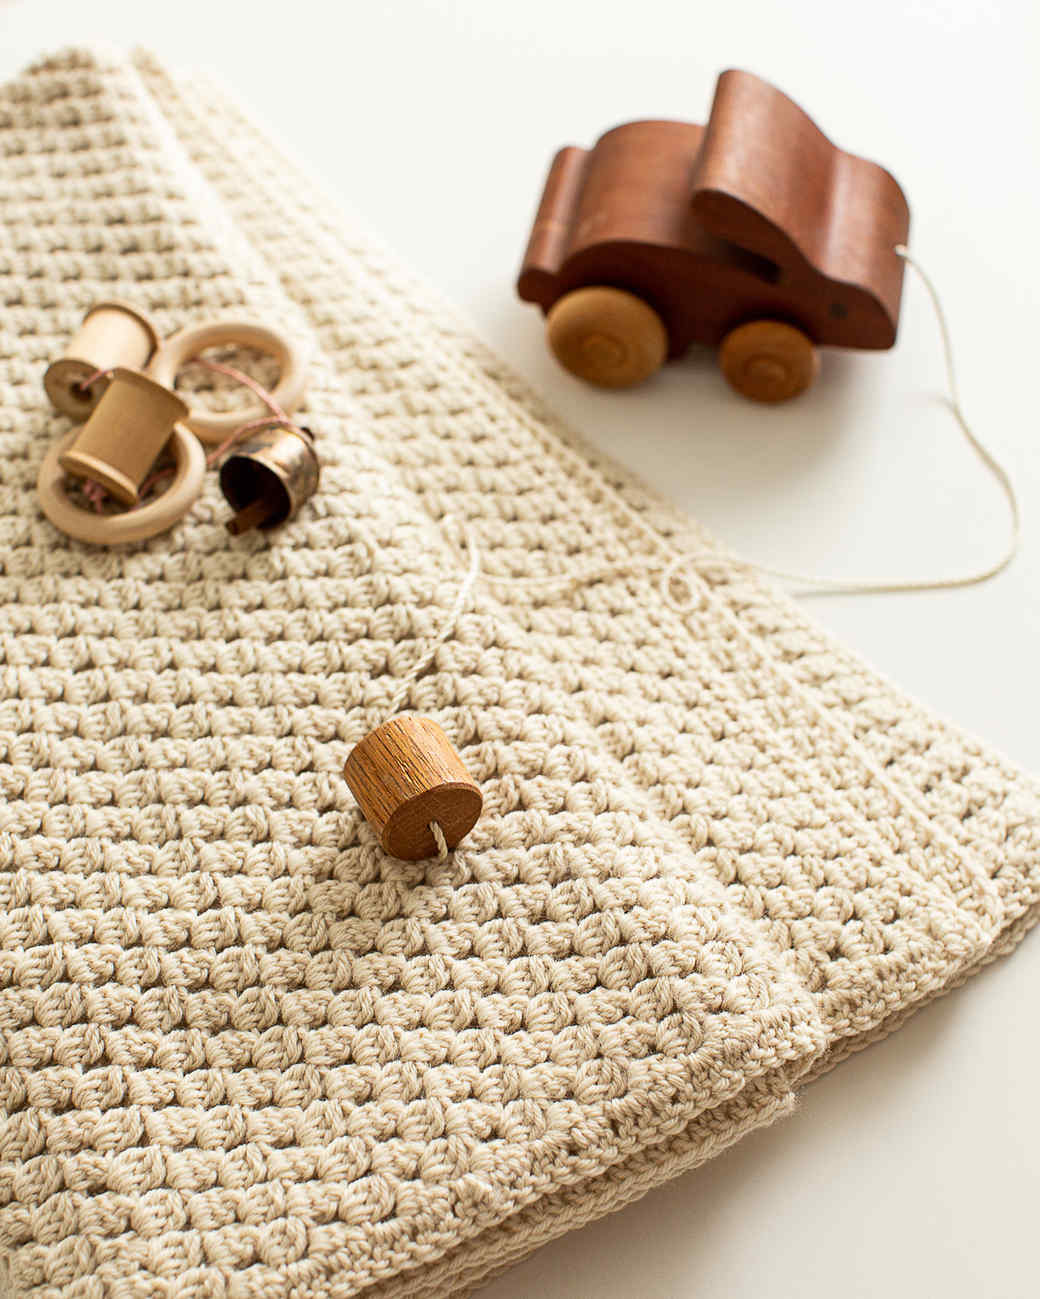 soft bobble crocheted baby blanket with wooden toys